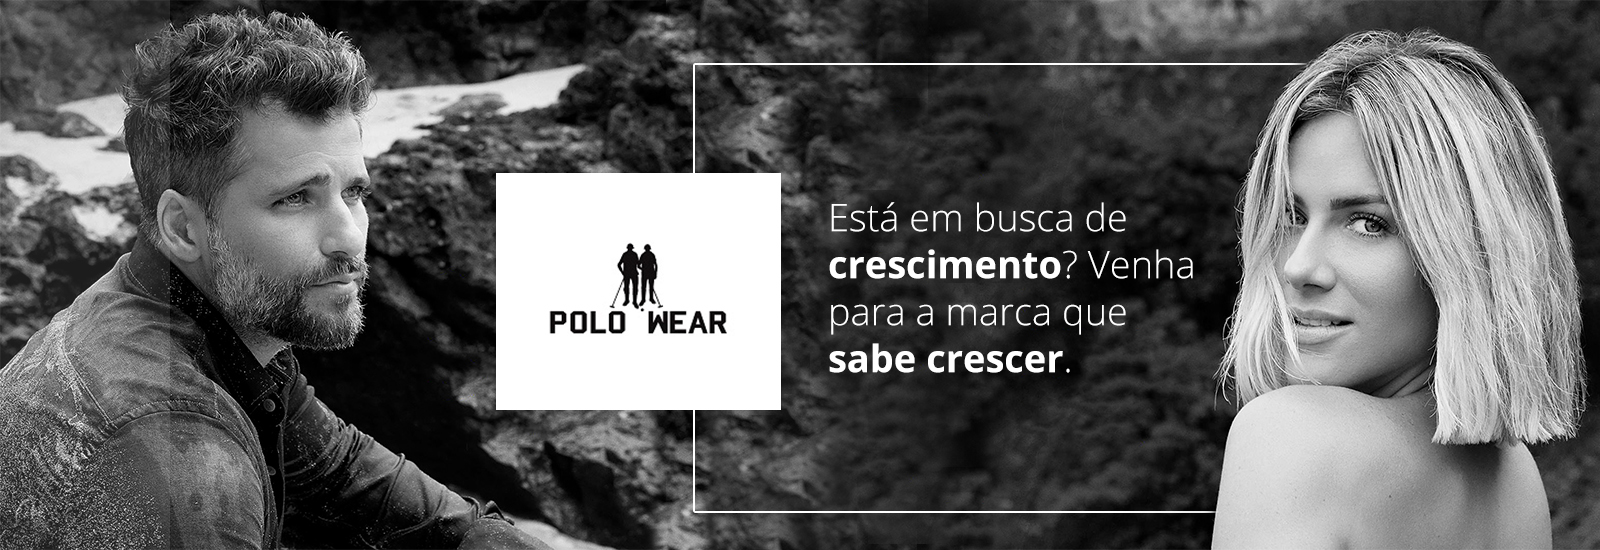 Polo wear trabalhe na empresa top brands fashion group 2